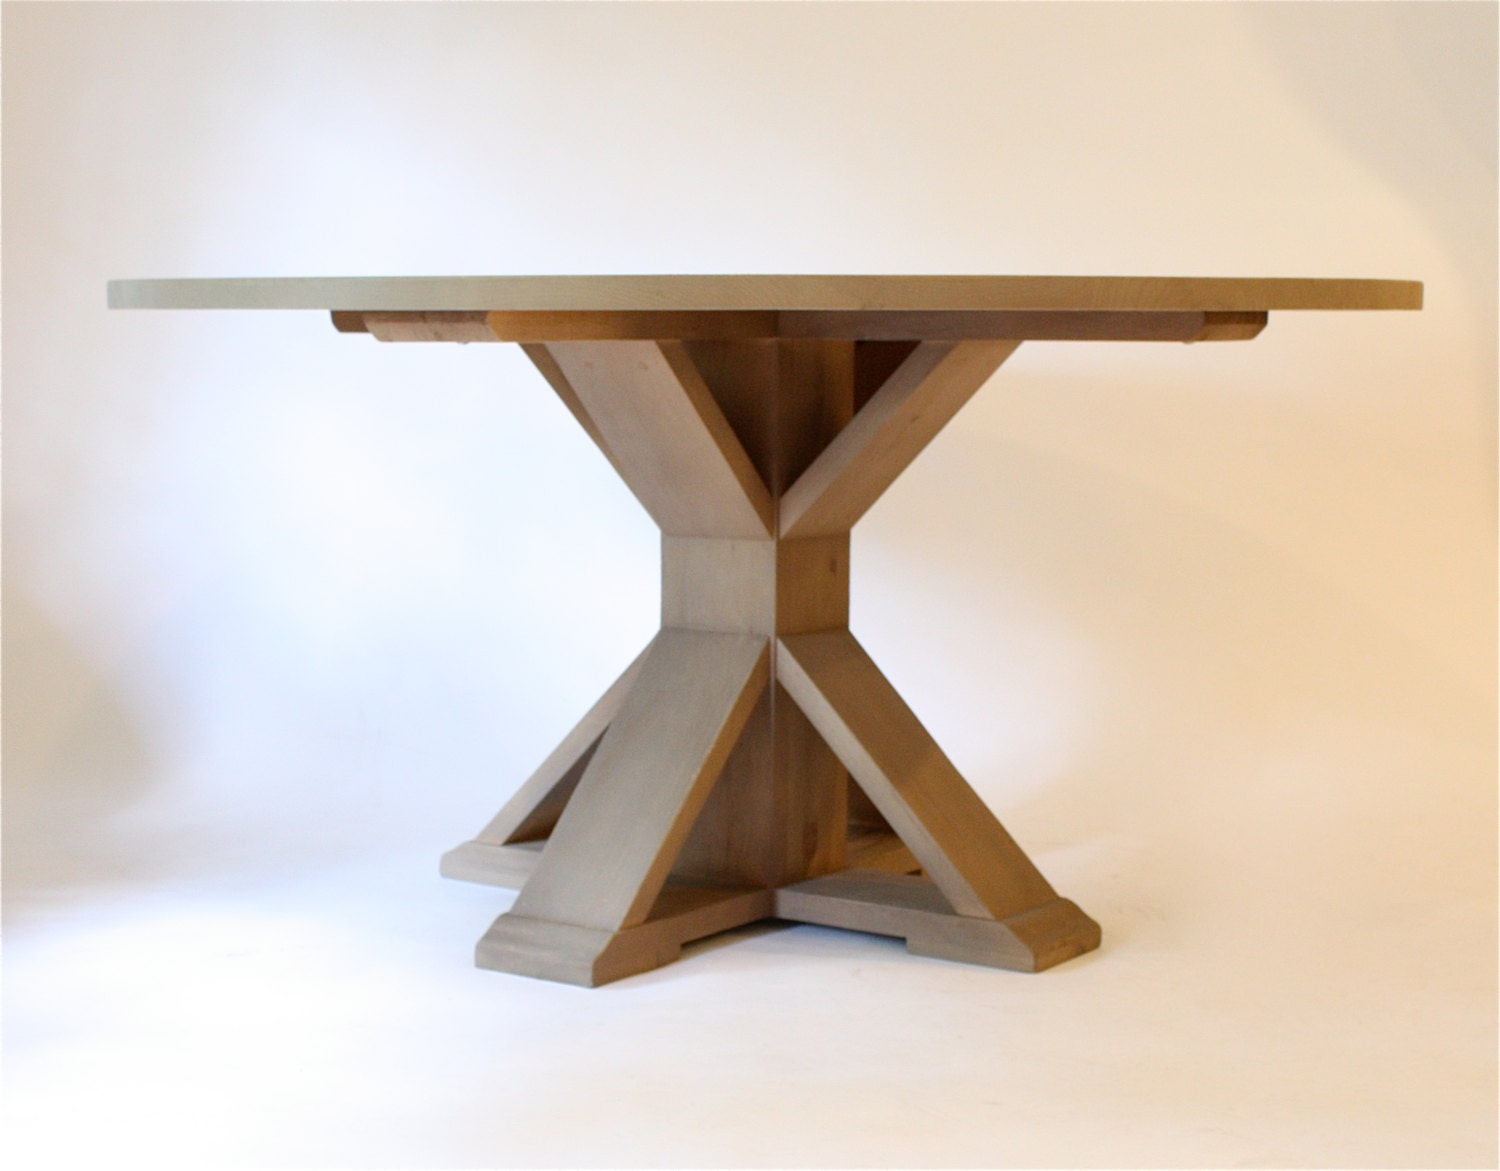 Trestle round dining table 60 natural finish by for 0 60 table